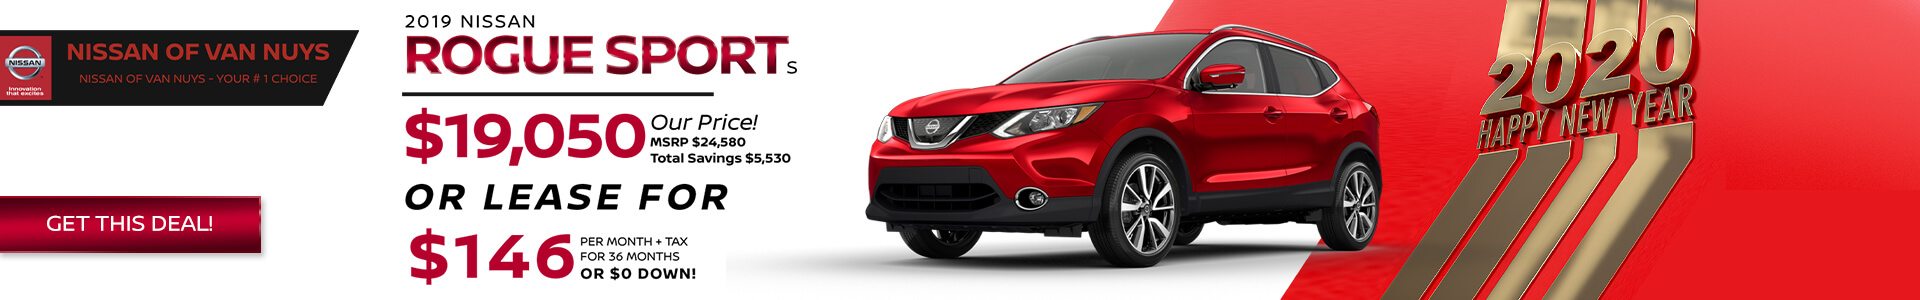 Nissan Rogue Sport - $19,050 Purchase/Lease